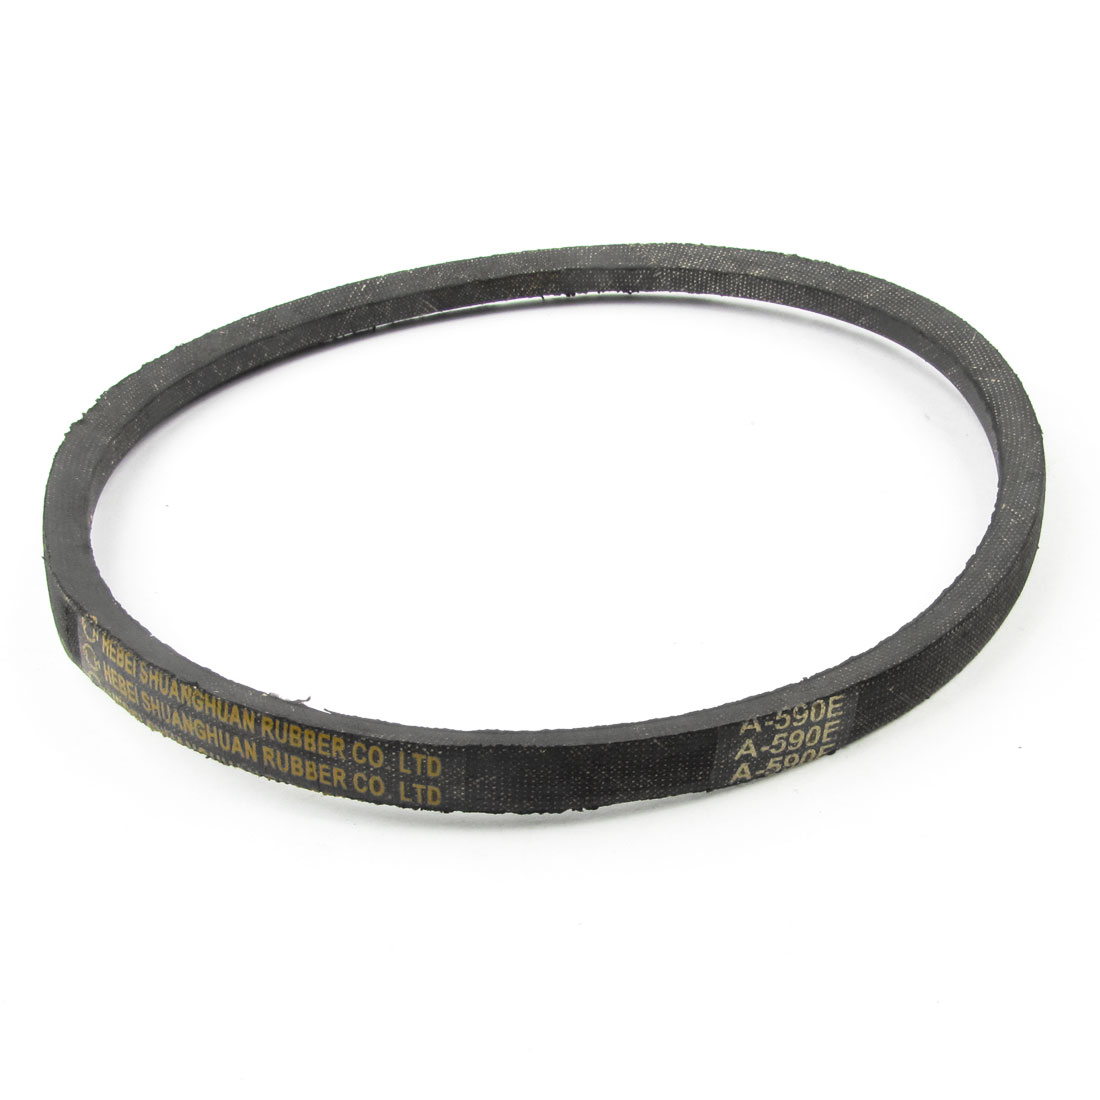 Washing Machine Motor Belt Replacement 13mm Outer Width 59cm Inner Girth